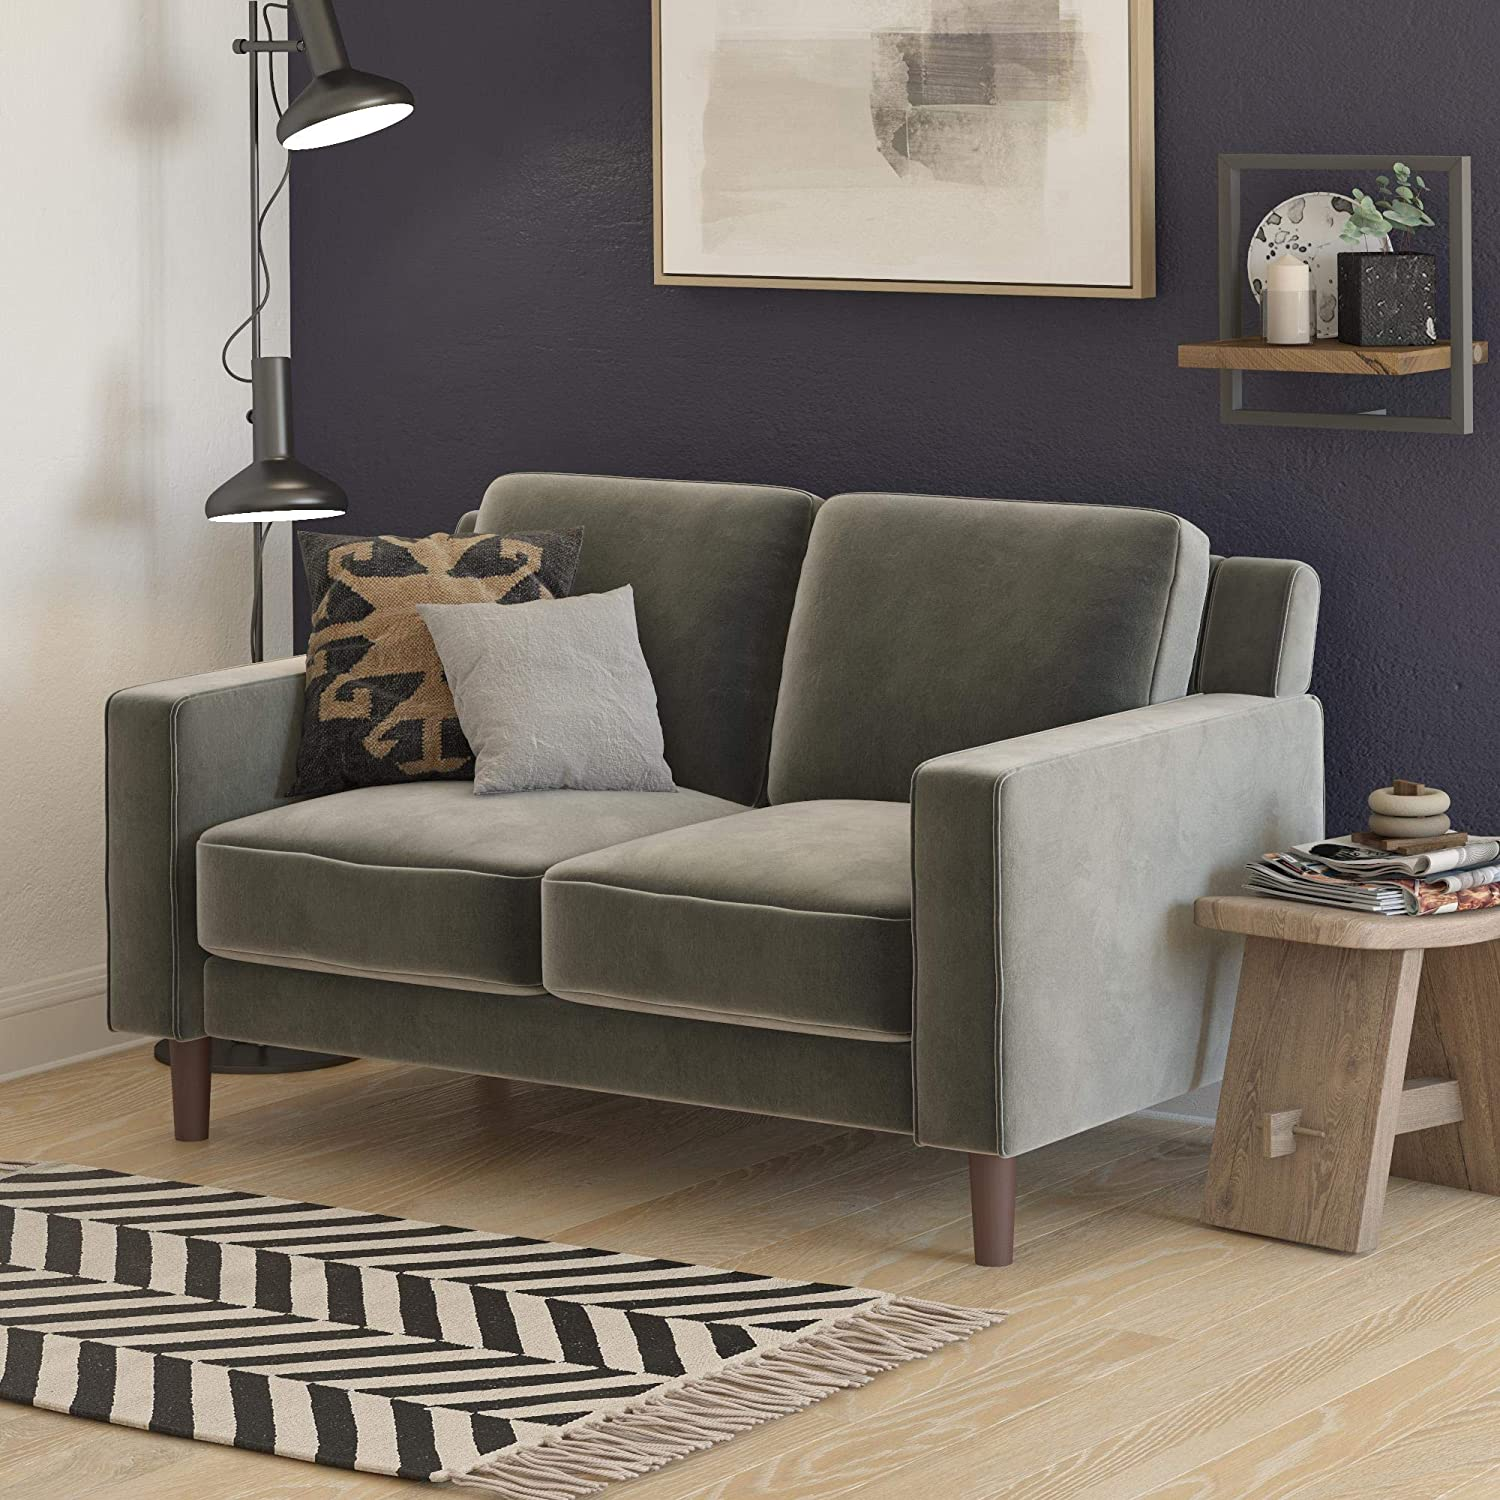 DHP Brynn Loveseat Seater Upholstered, Living Room Furniture, Velvet Sofa, Gray